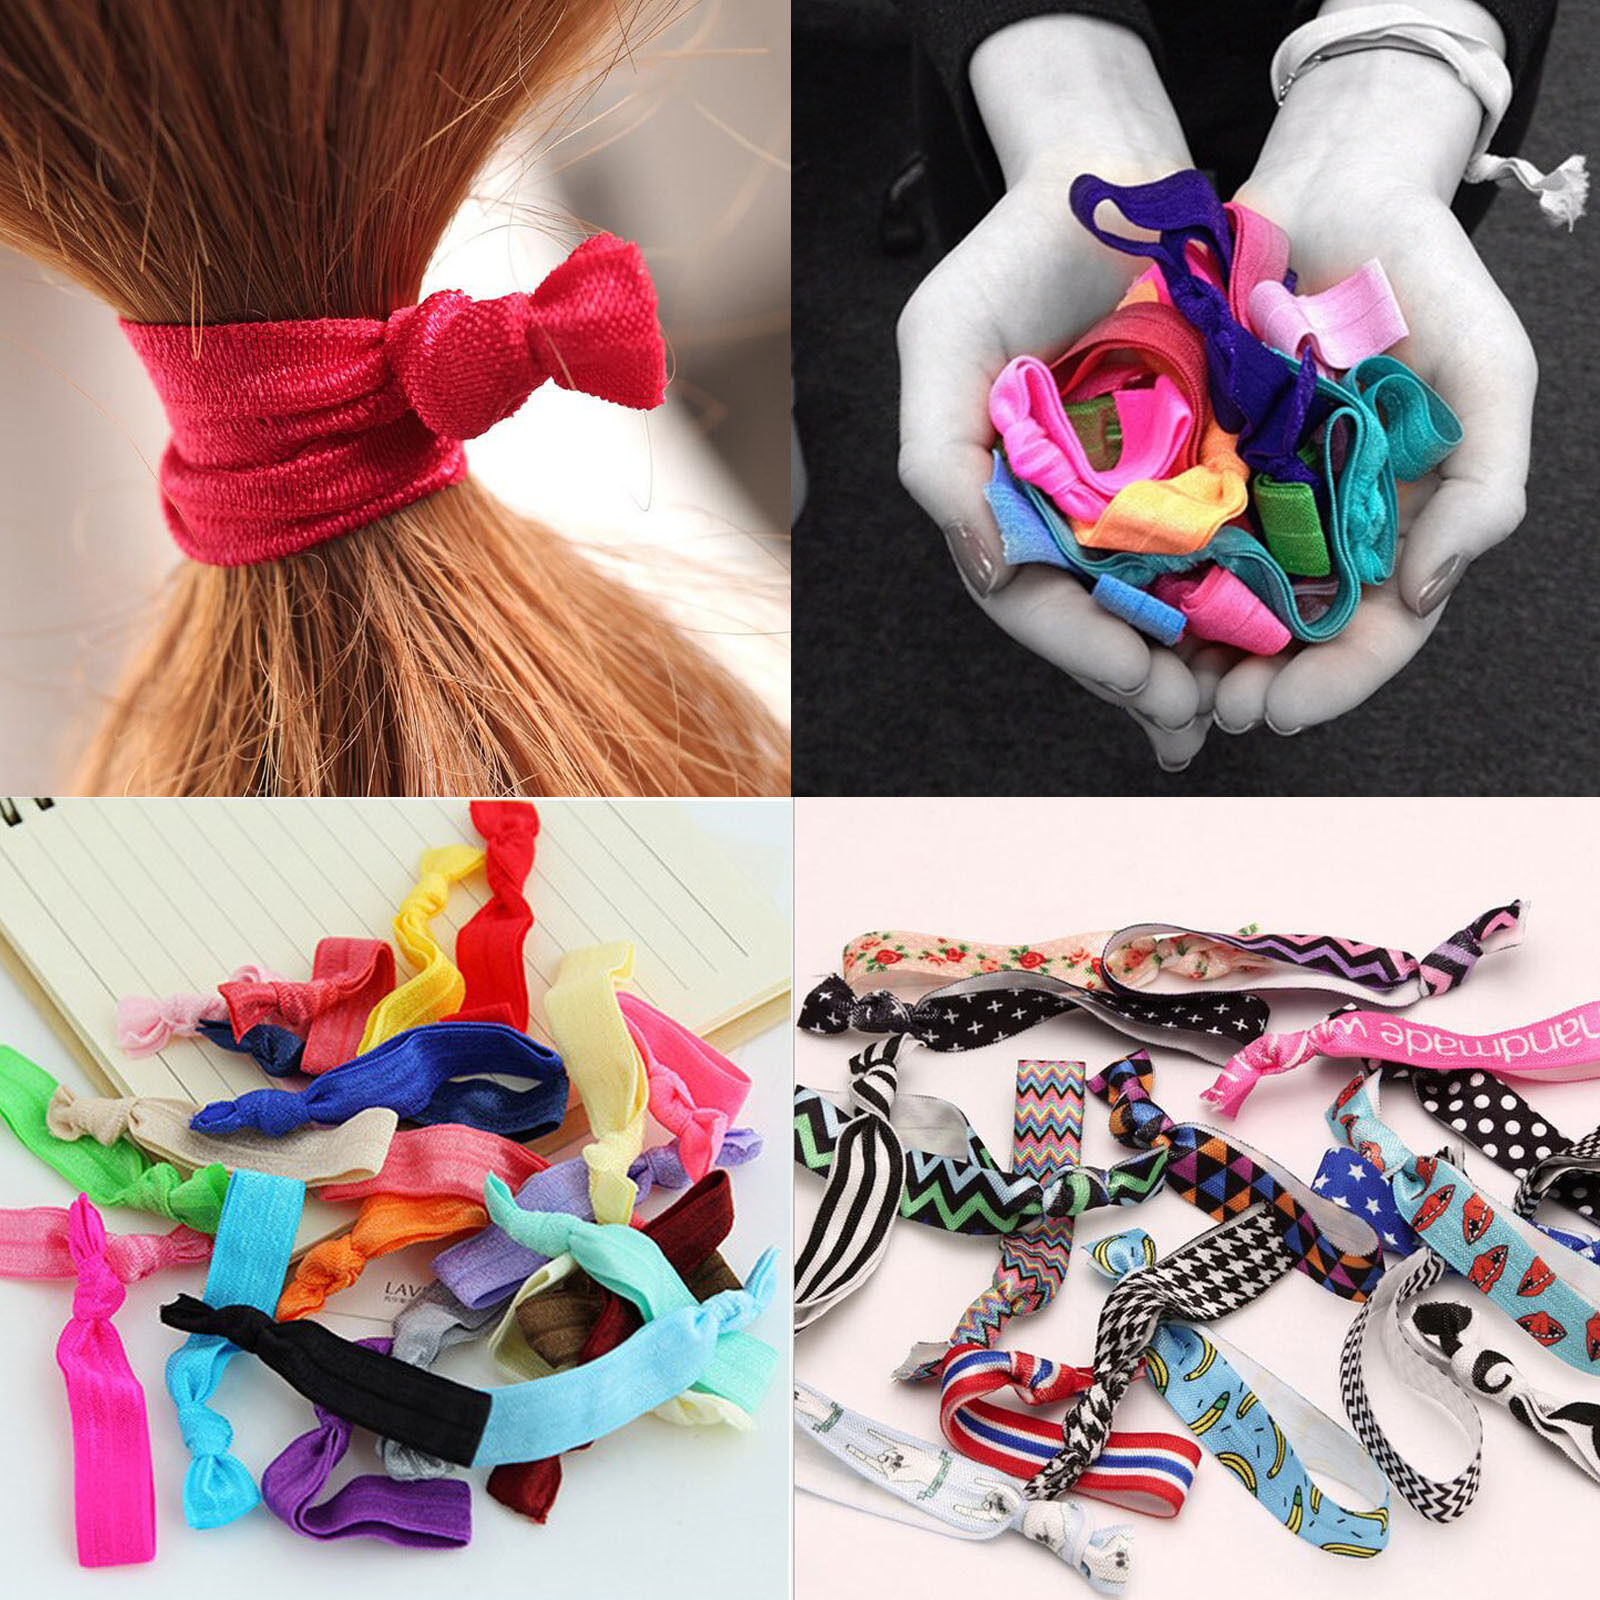 10pcs Girl Elastic Hair Ties Rubber Band Knotted Hairband Ponytail 1 Of 4only 5 Available